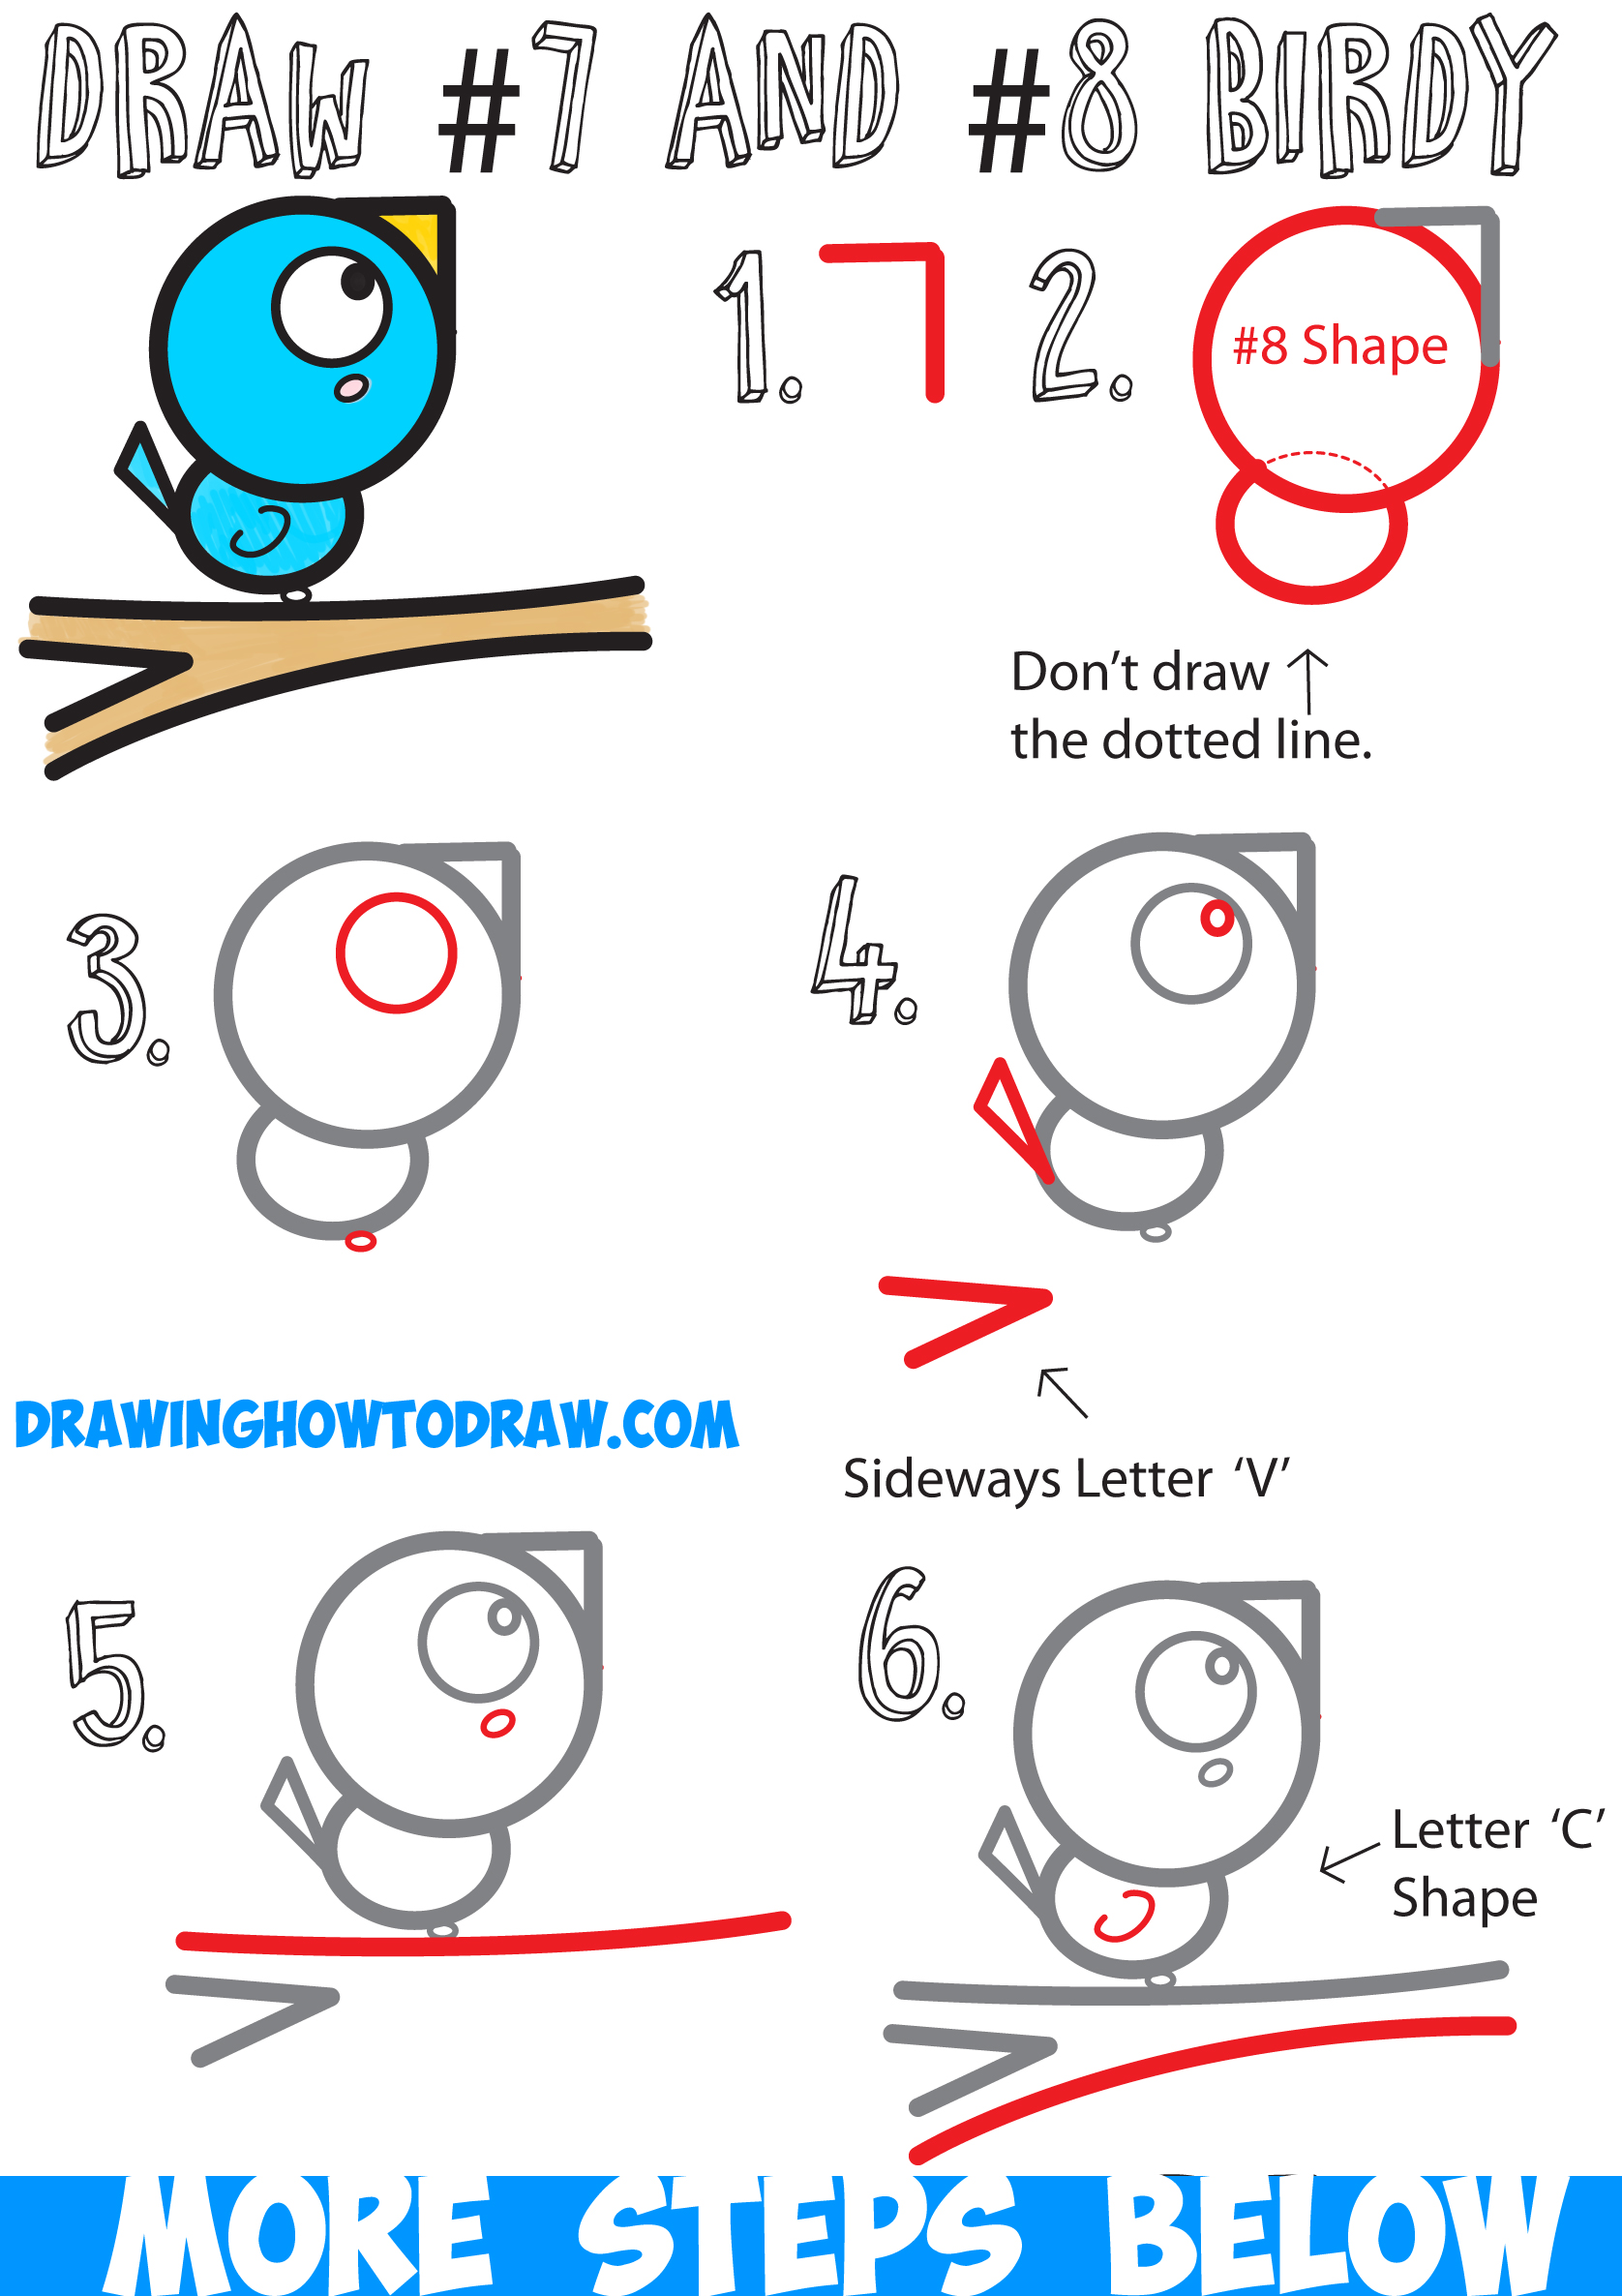 Uncategorized How To Draw A Bird Step By Step For Kids how to draw a bird on branch easy for kids step by drawing cute cartoon with numbers step